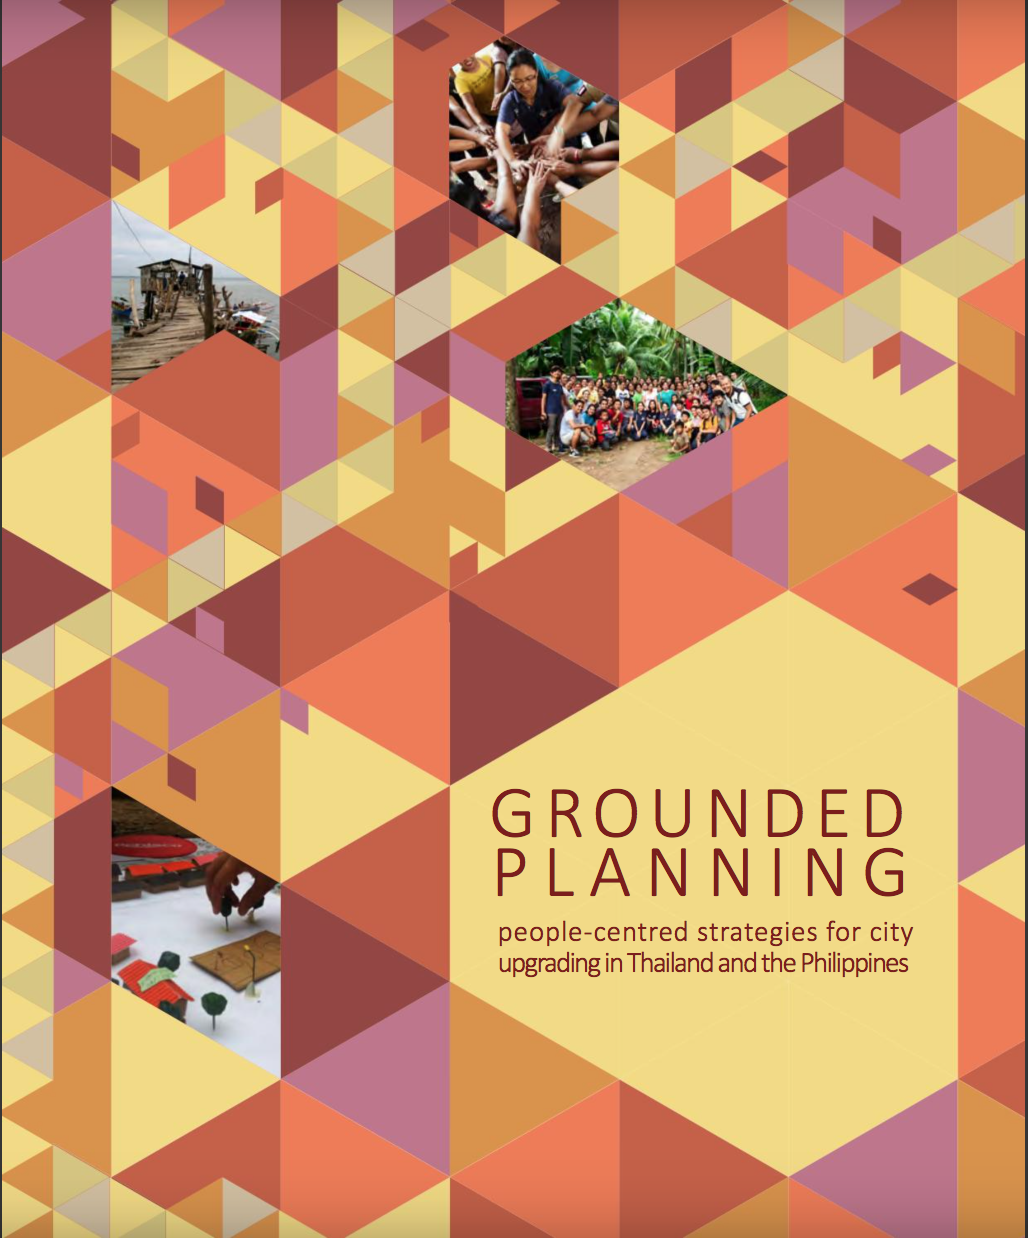 DPU/ACHR/CAN Young Professional's Program and Openspace: Grounded Planning: People-Centred Strategies for City Upgrading in Thailand and the Philippines